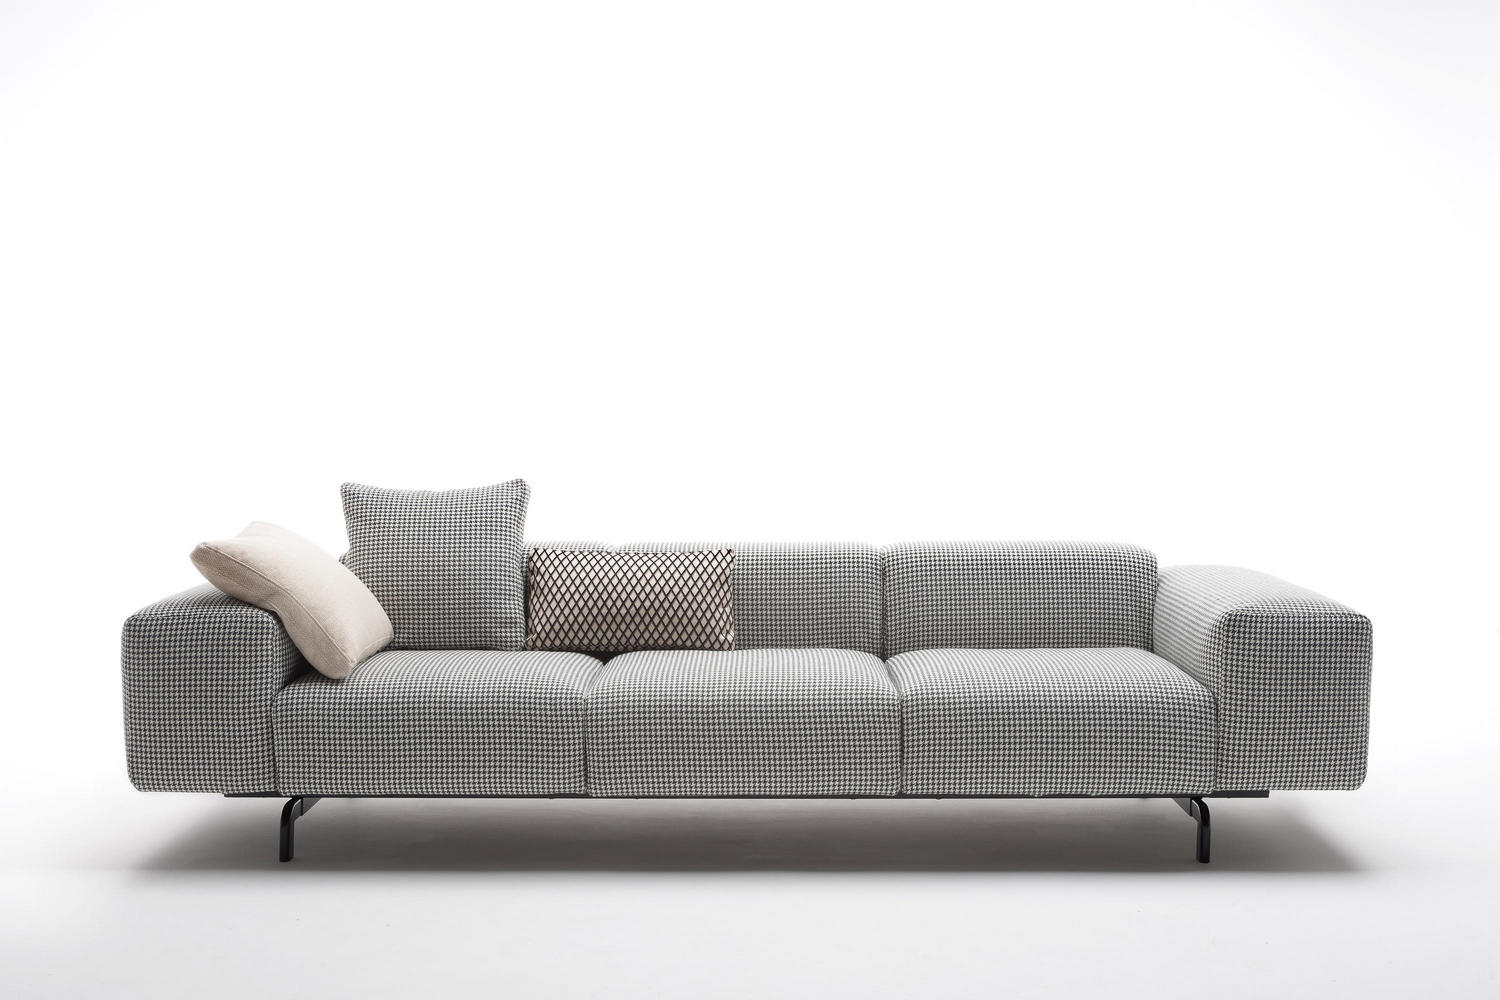 Piero Lissoni Modular Sofa Largo Sofa By Piero Lissoni For Kartell Space Furniture